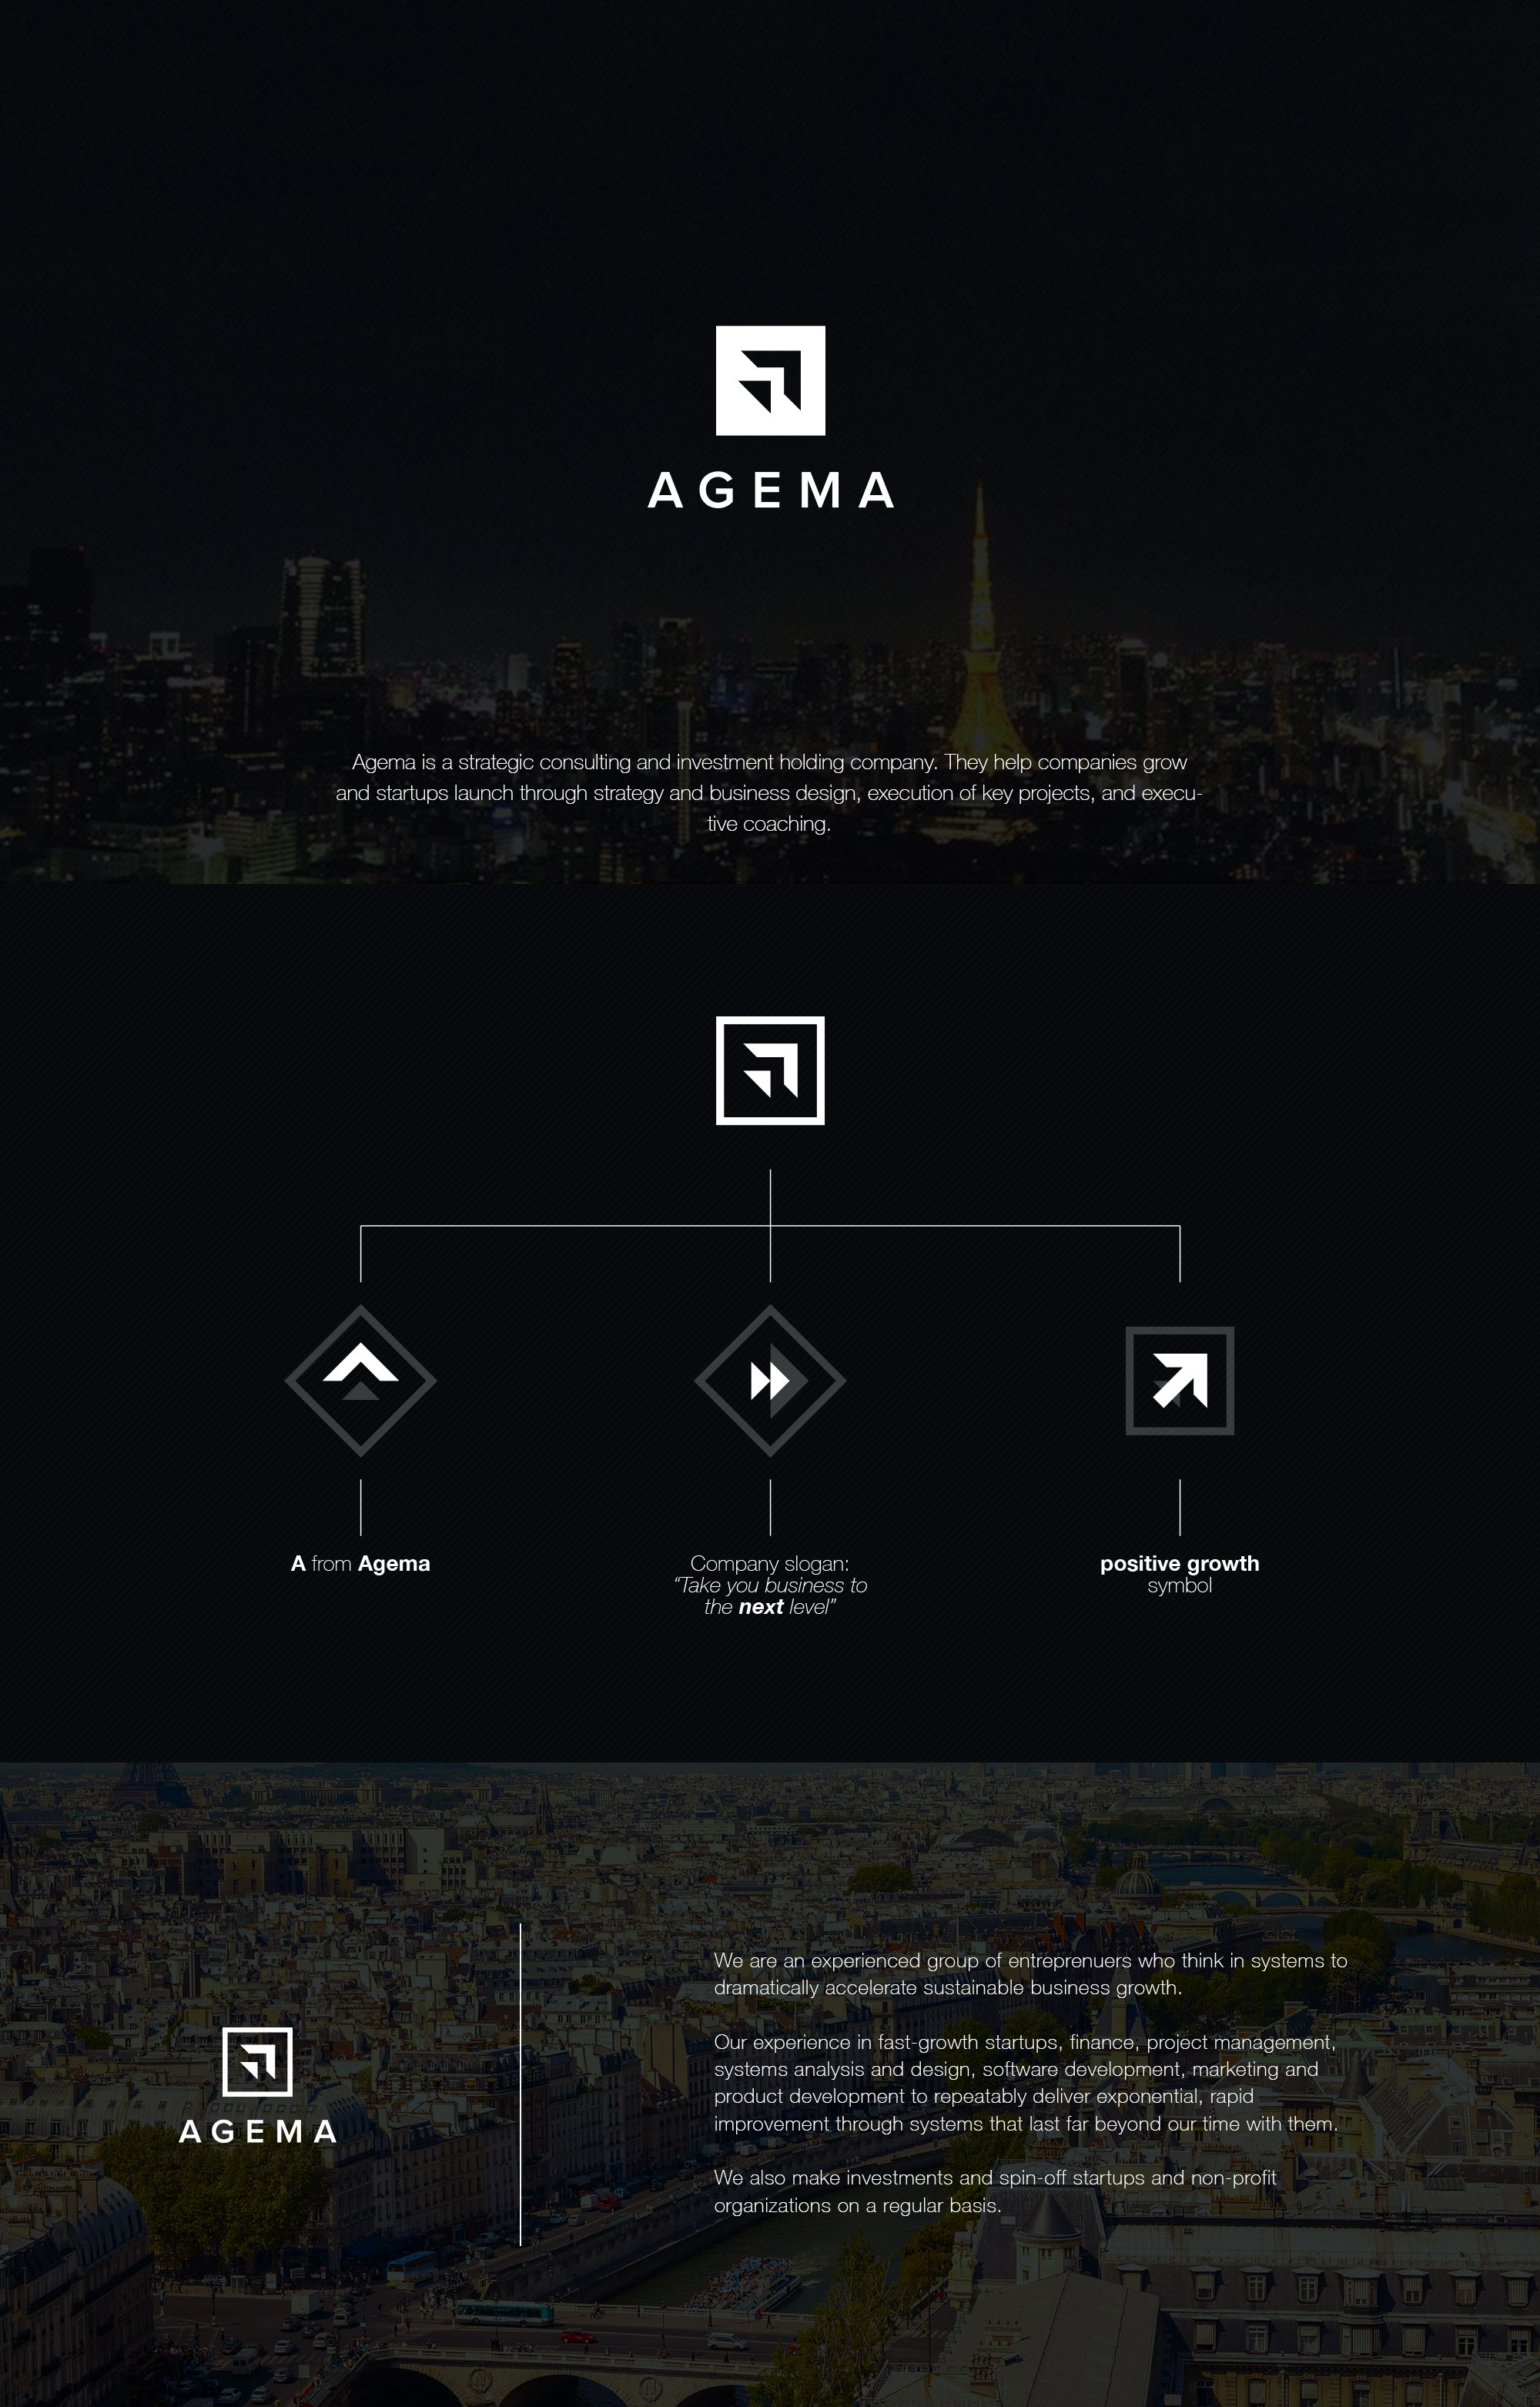 AGEMA Logo Design - strategic consulting and investment holding company.